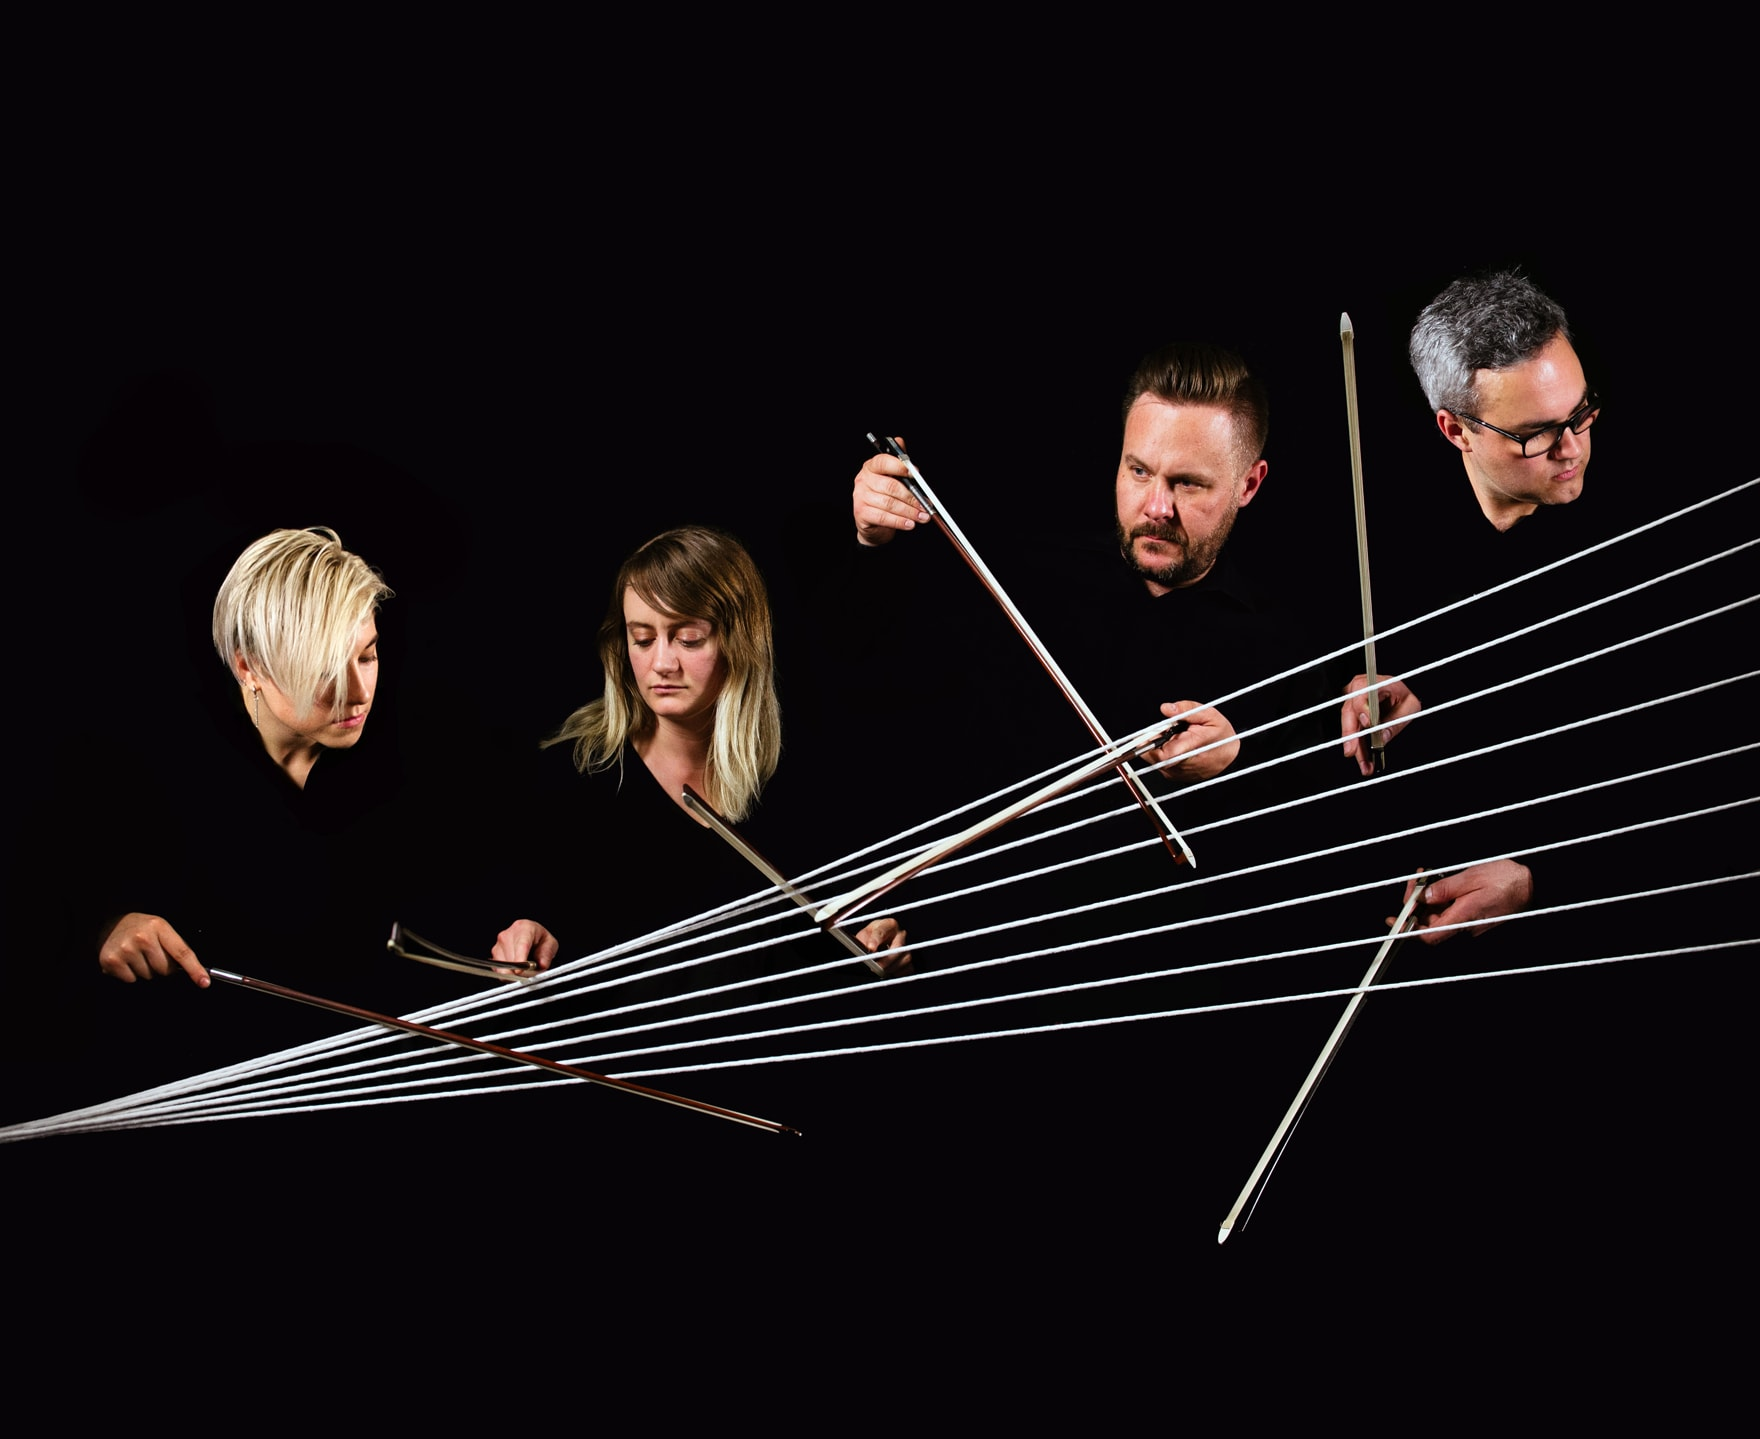 4 members of Spektral Quartet hold up their bows against lines that form a spectrum